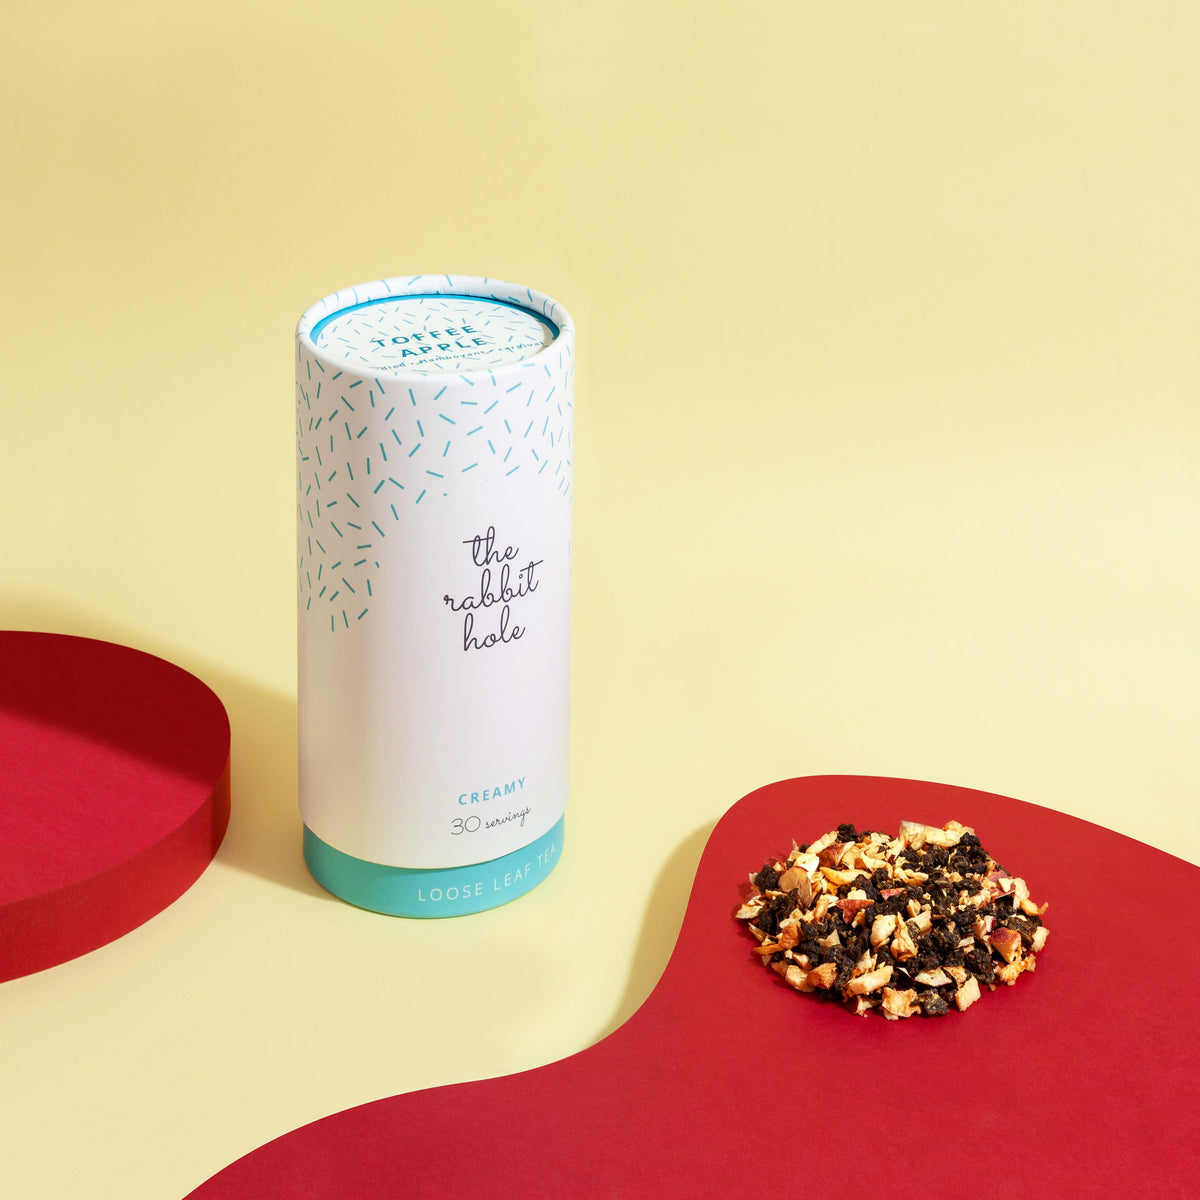 Toffee Apple loose leaf Creamy tea by The Rabbit Hole - Australian Made Tea - canister on a colourful yellow and red background